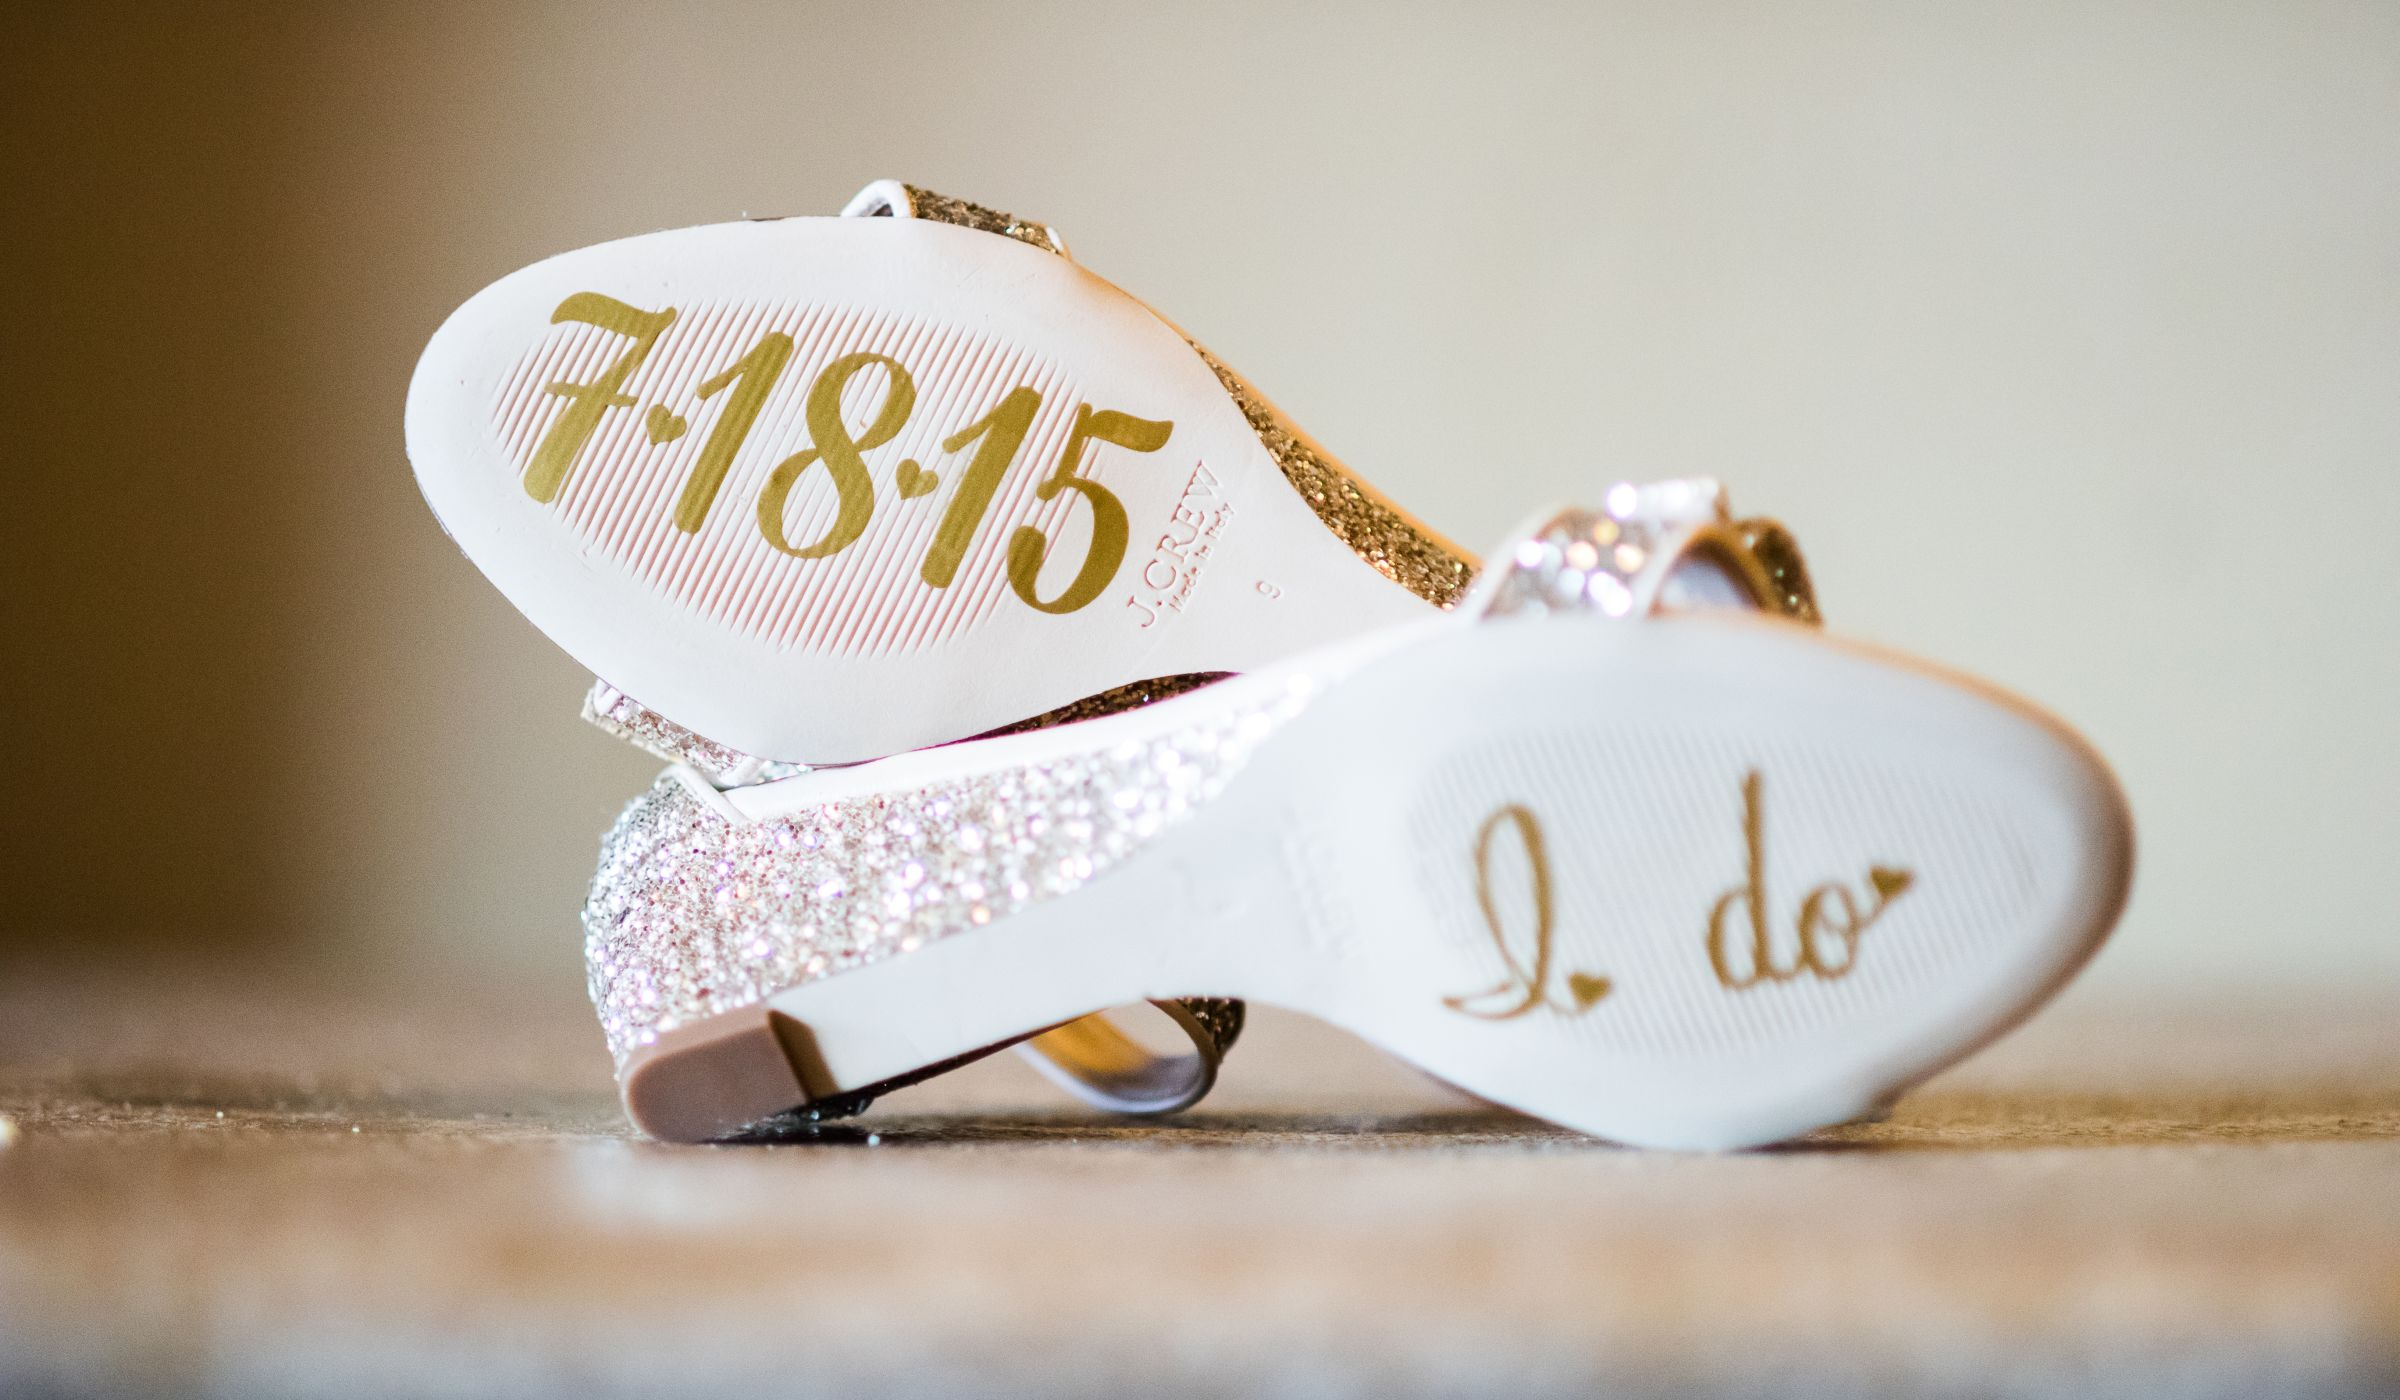 Wedding Shoes Photography: 9 Wedding Shoe Ideas For Super-Cute Soles